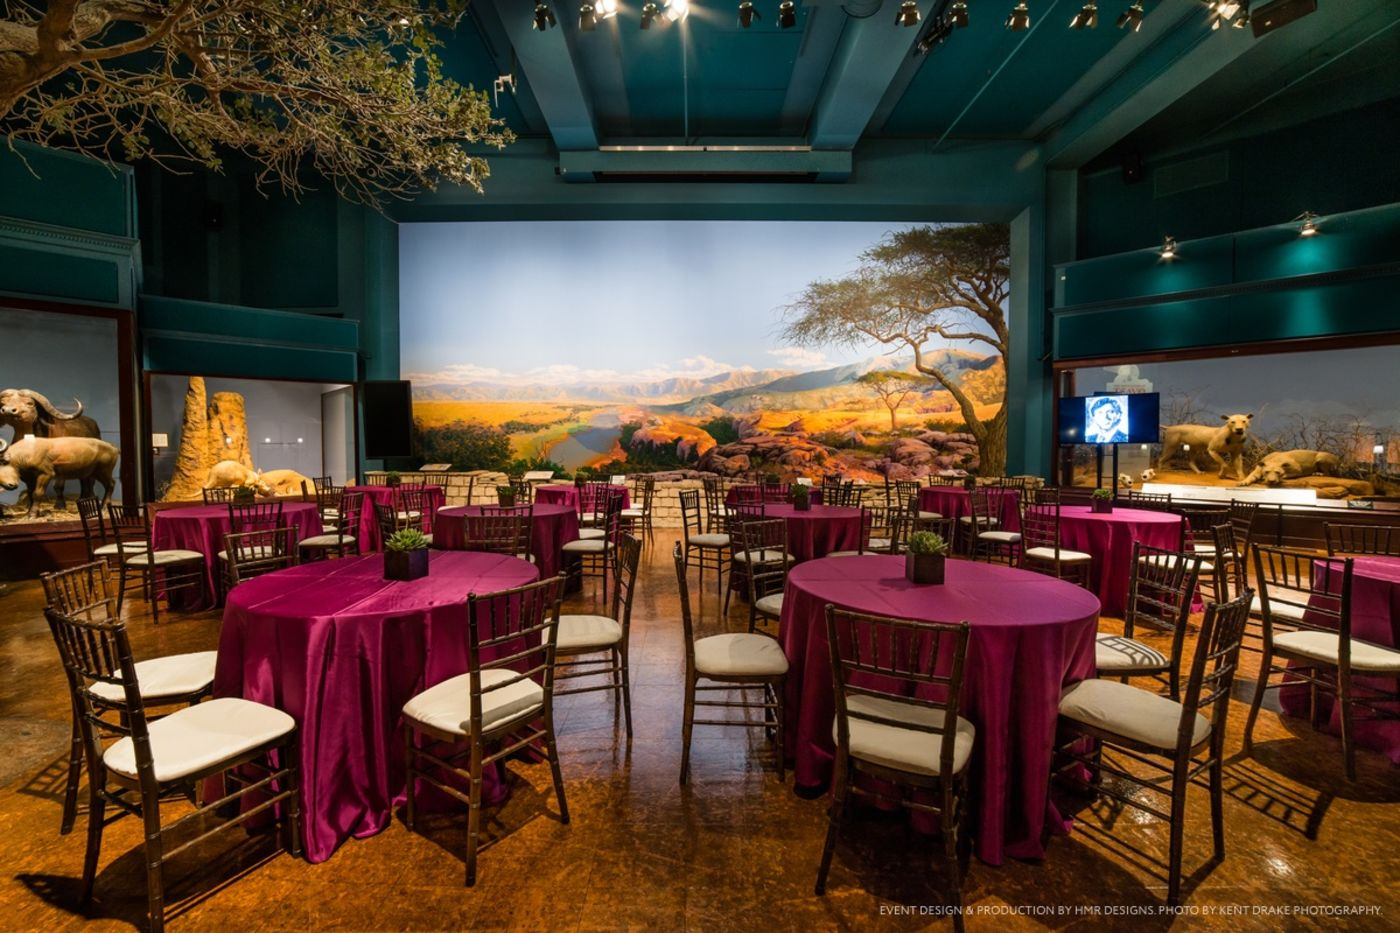 Small circular tables covered by fuchsia tablecloths, each with five chairs set up around them, situated inside Rice Hall. A mural of the Serengeti plains is visible on the back wall, with dioramas on either side.